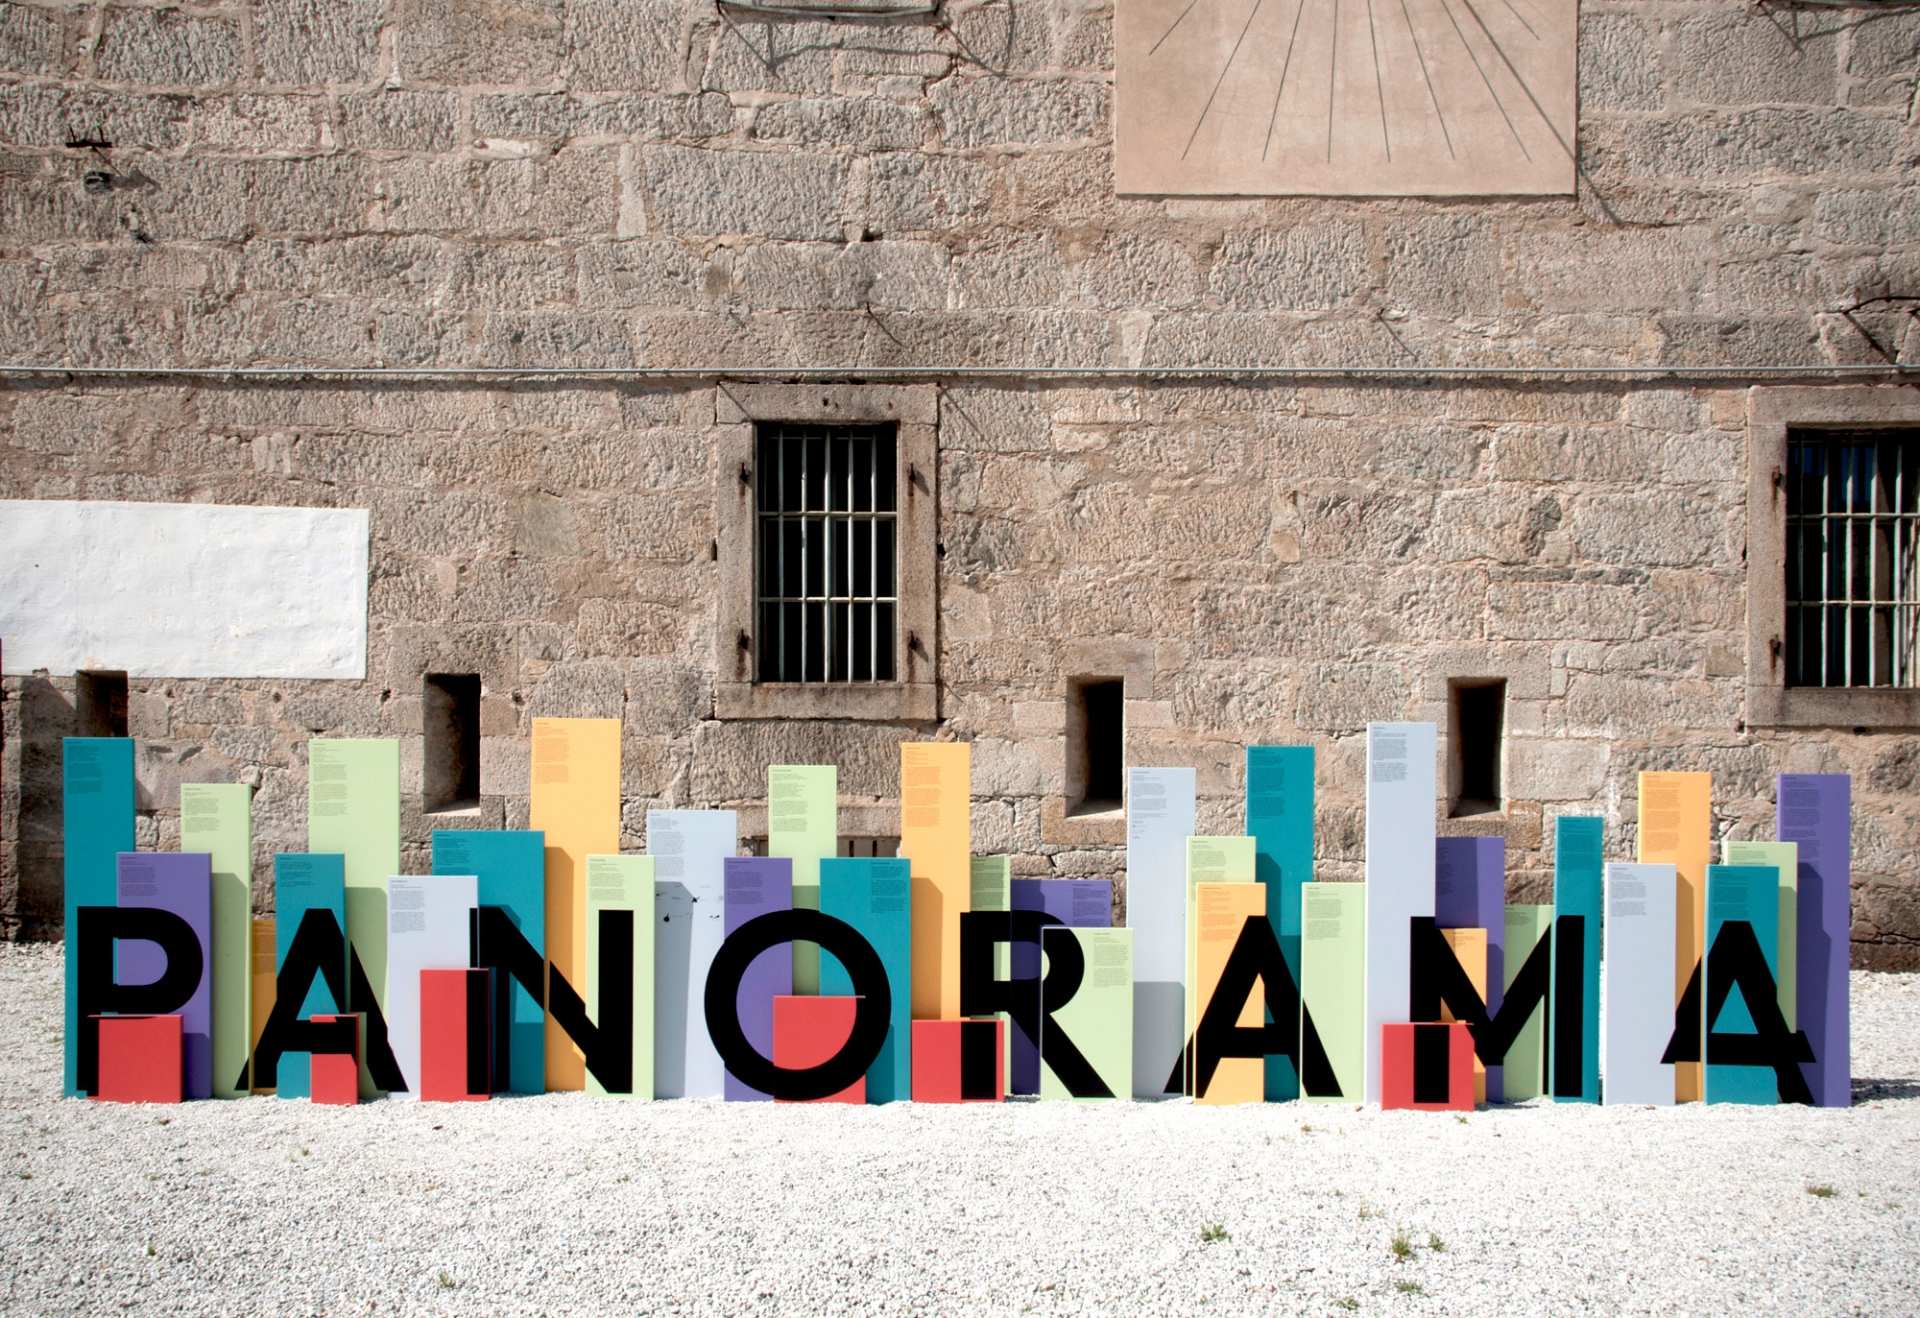 Claudia Polizzi Signage system and identity, Panorama 4, 2012